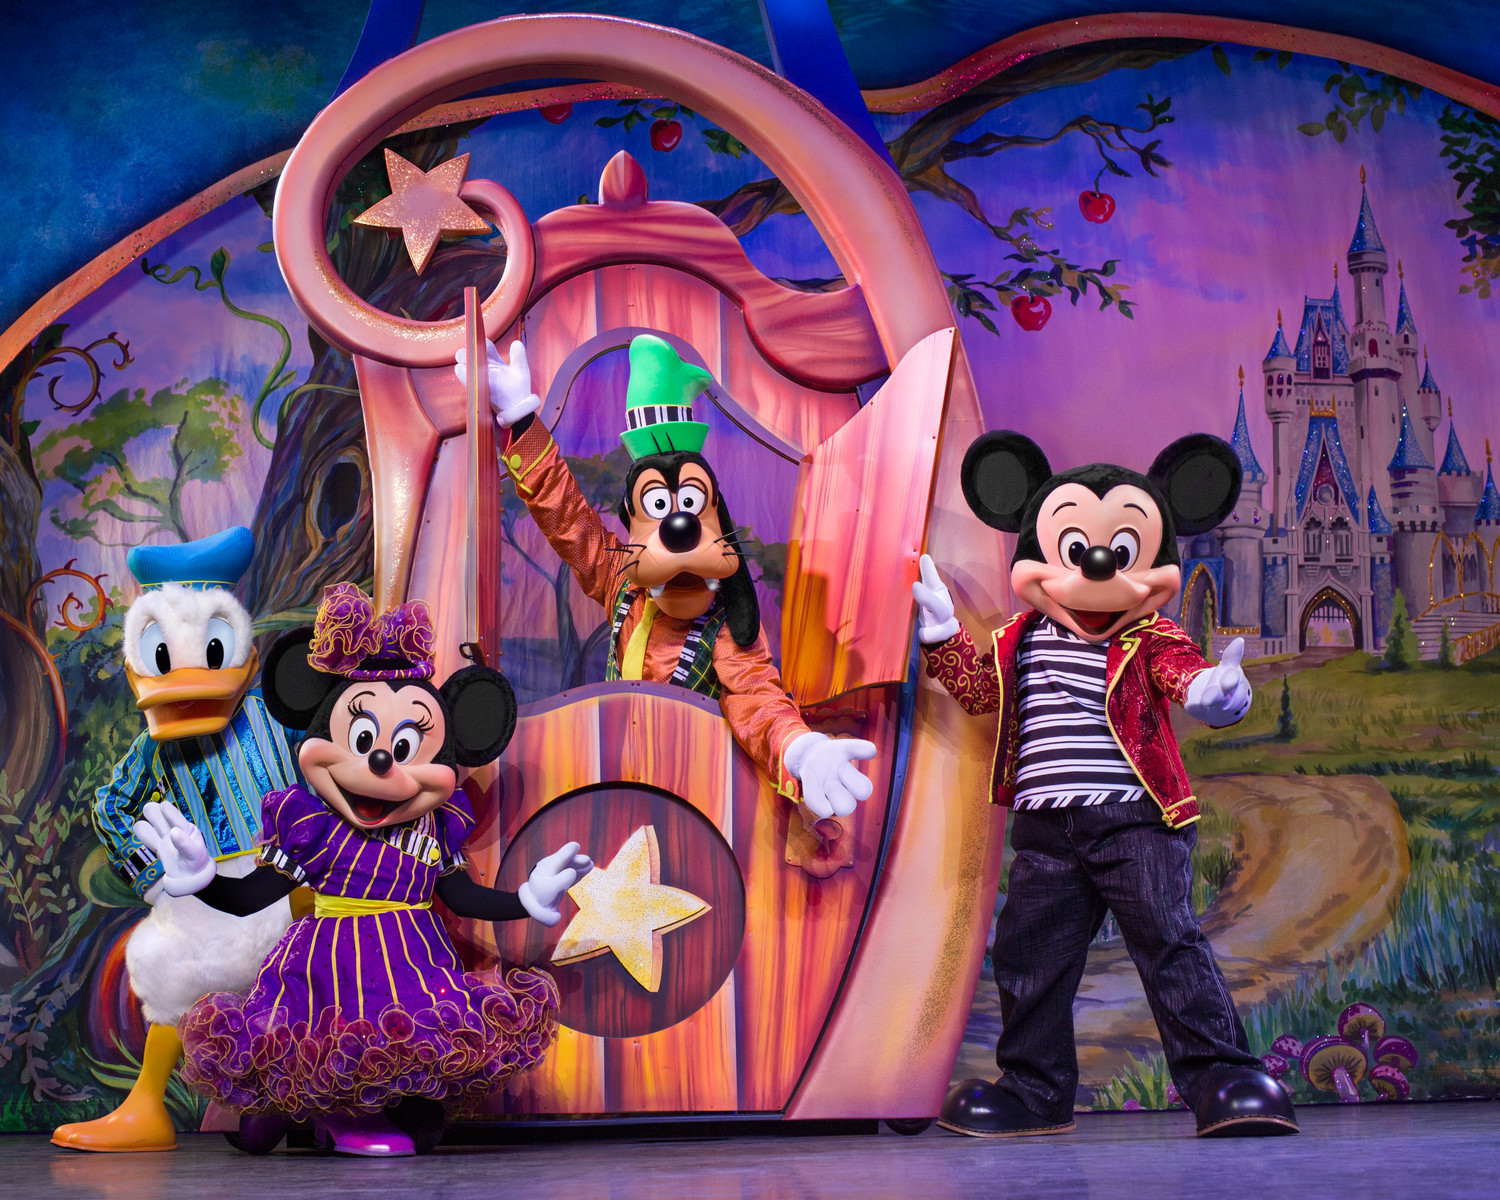 Mickey, Minnie, Goofy and Donald gather around a magic door.